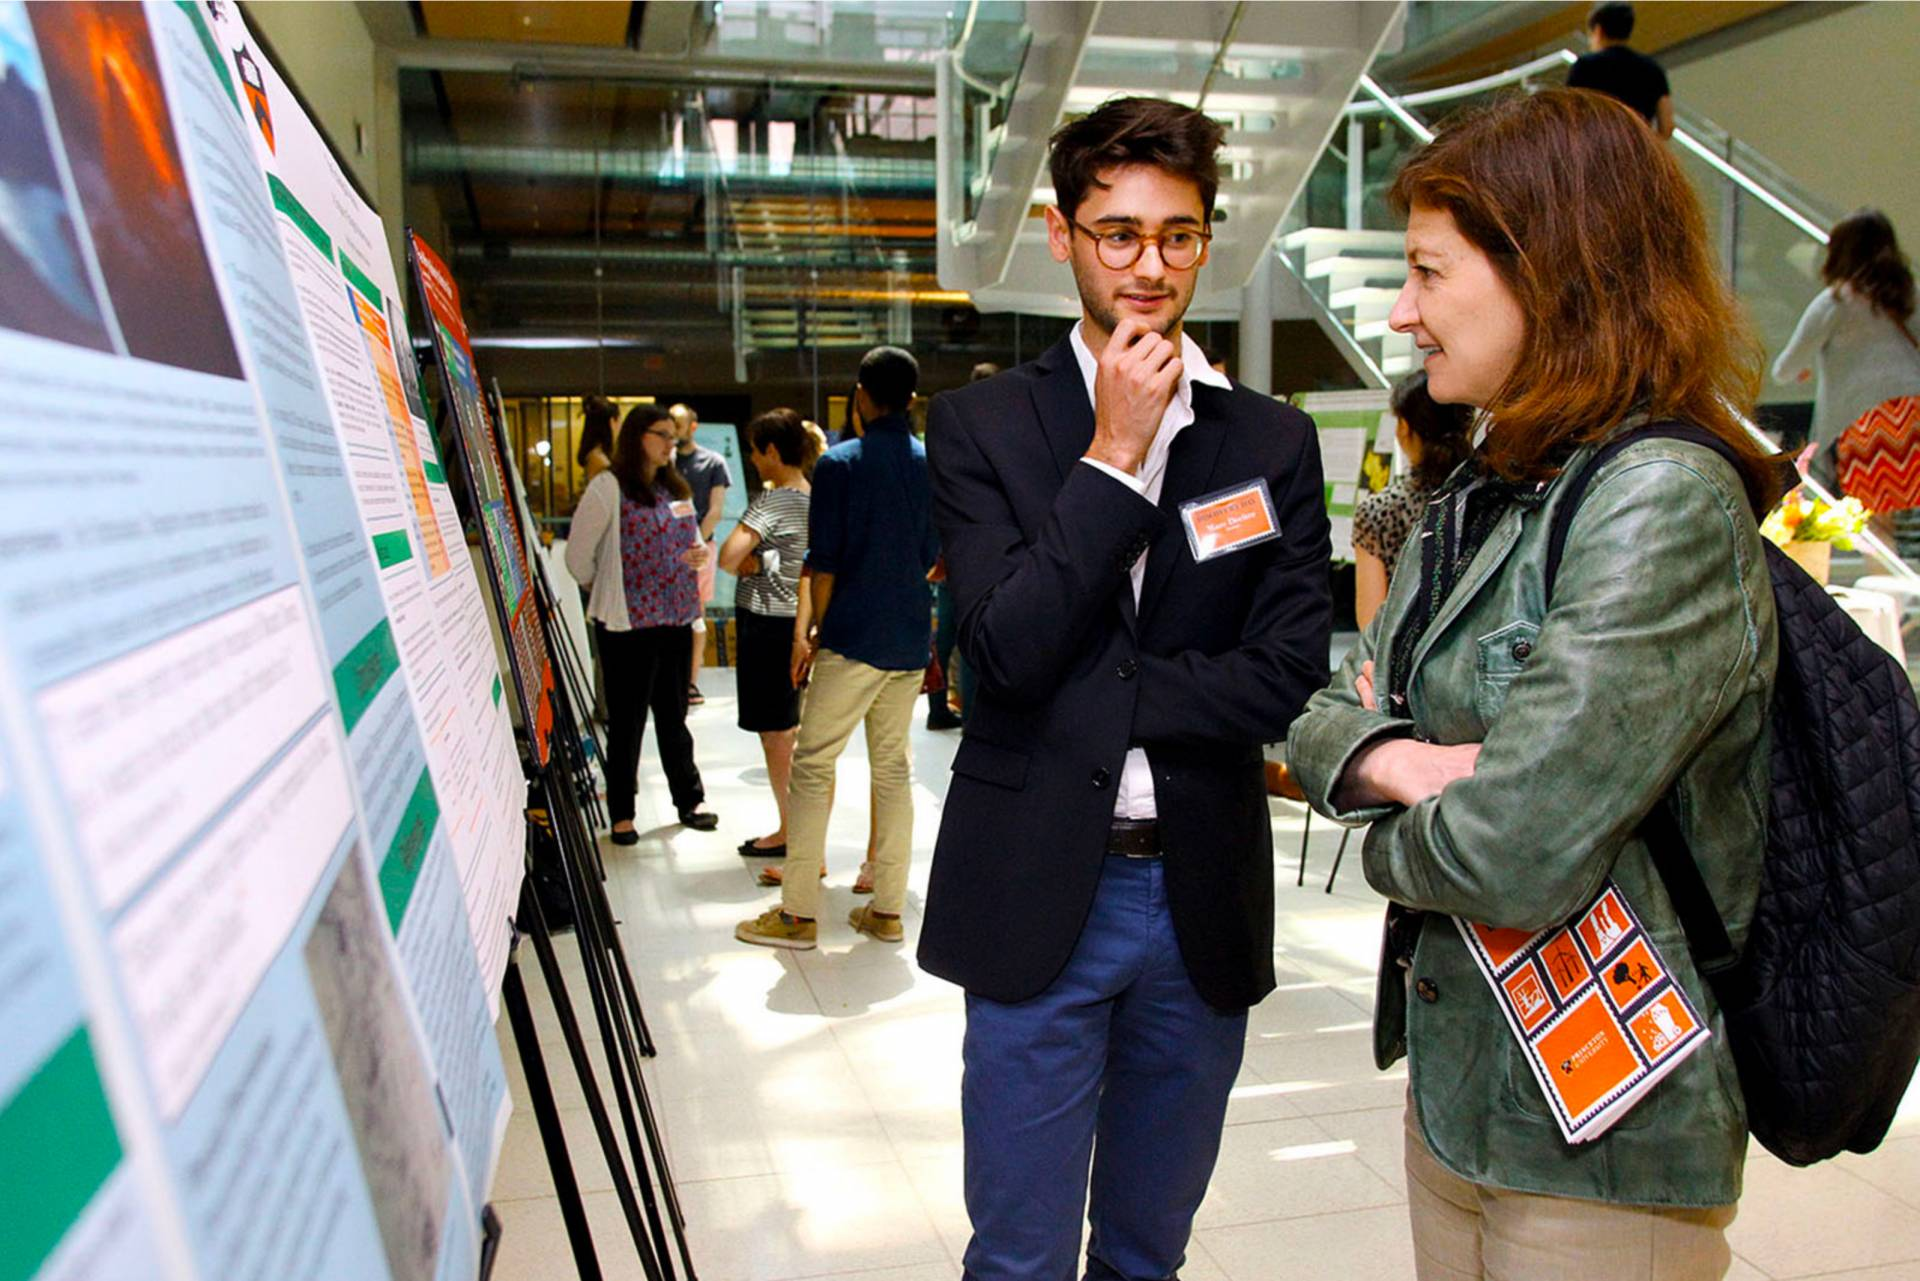 Marc Decitre explains his research to Princeton University Provost Deborah Prentice